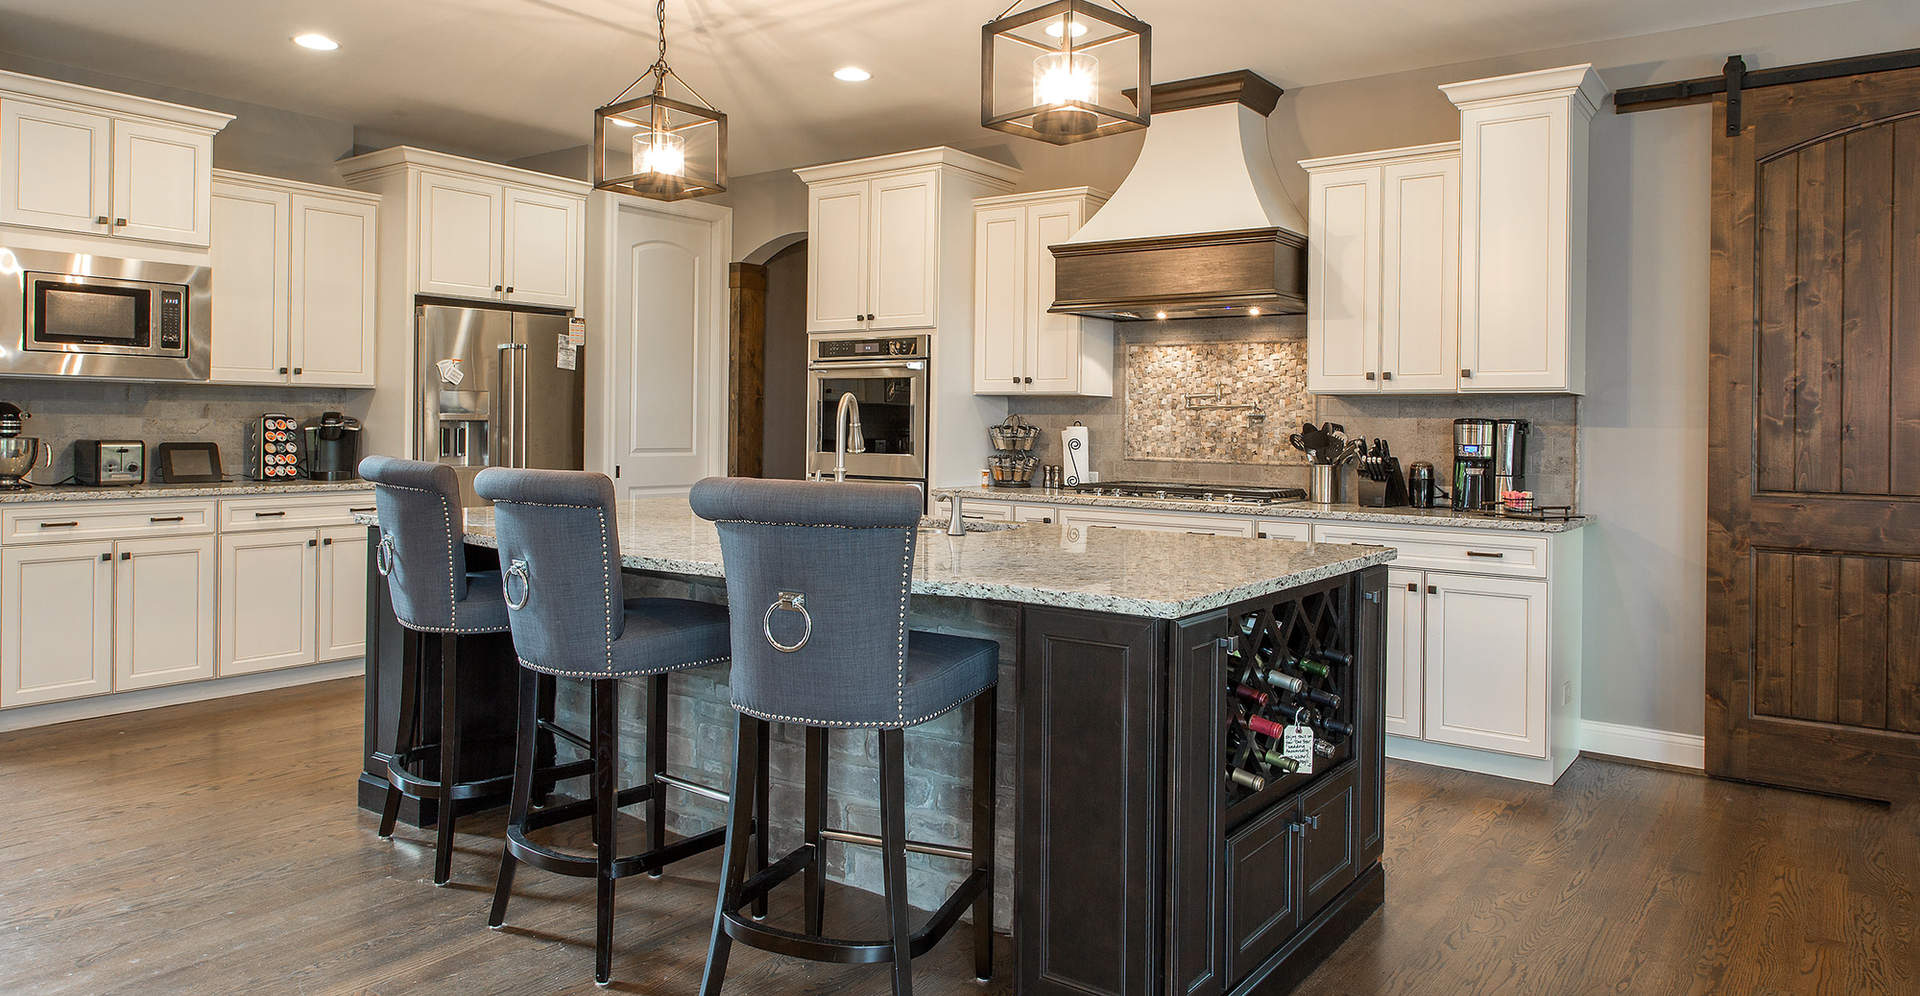 Kitchen | First Floor Master Rustic Custom Home Design | Carriage Hill of Liberty Township Ohio